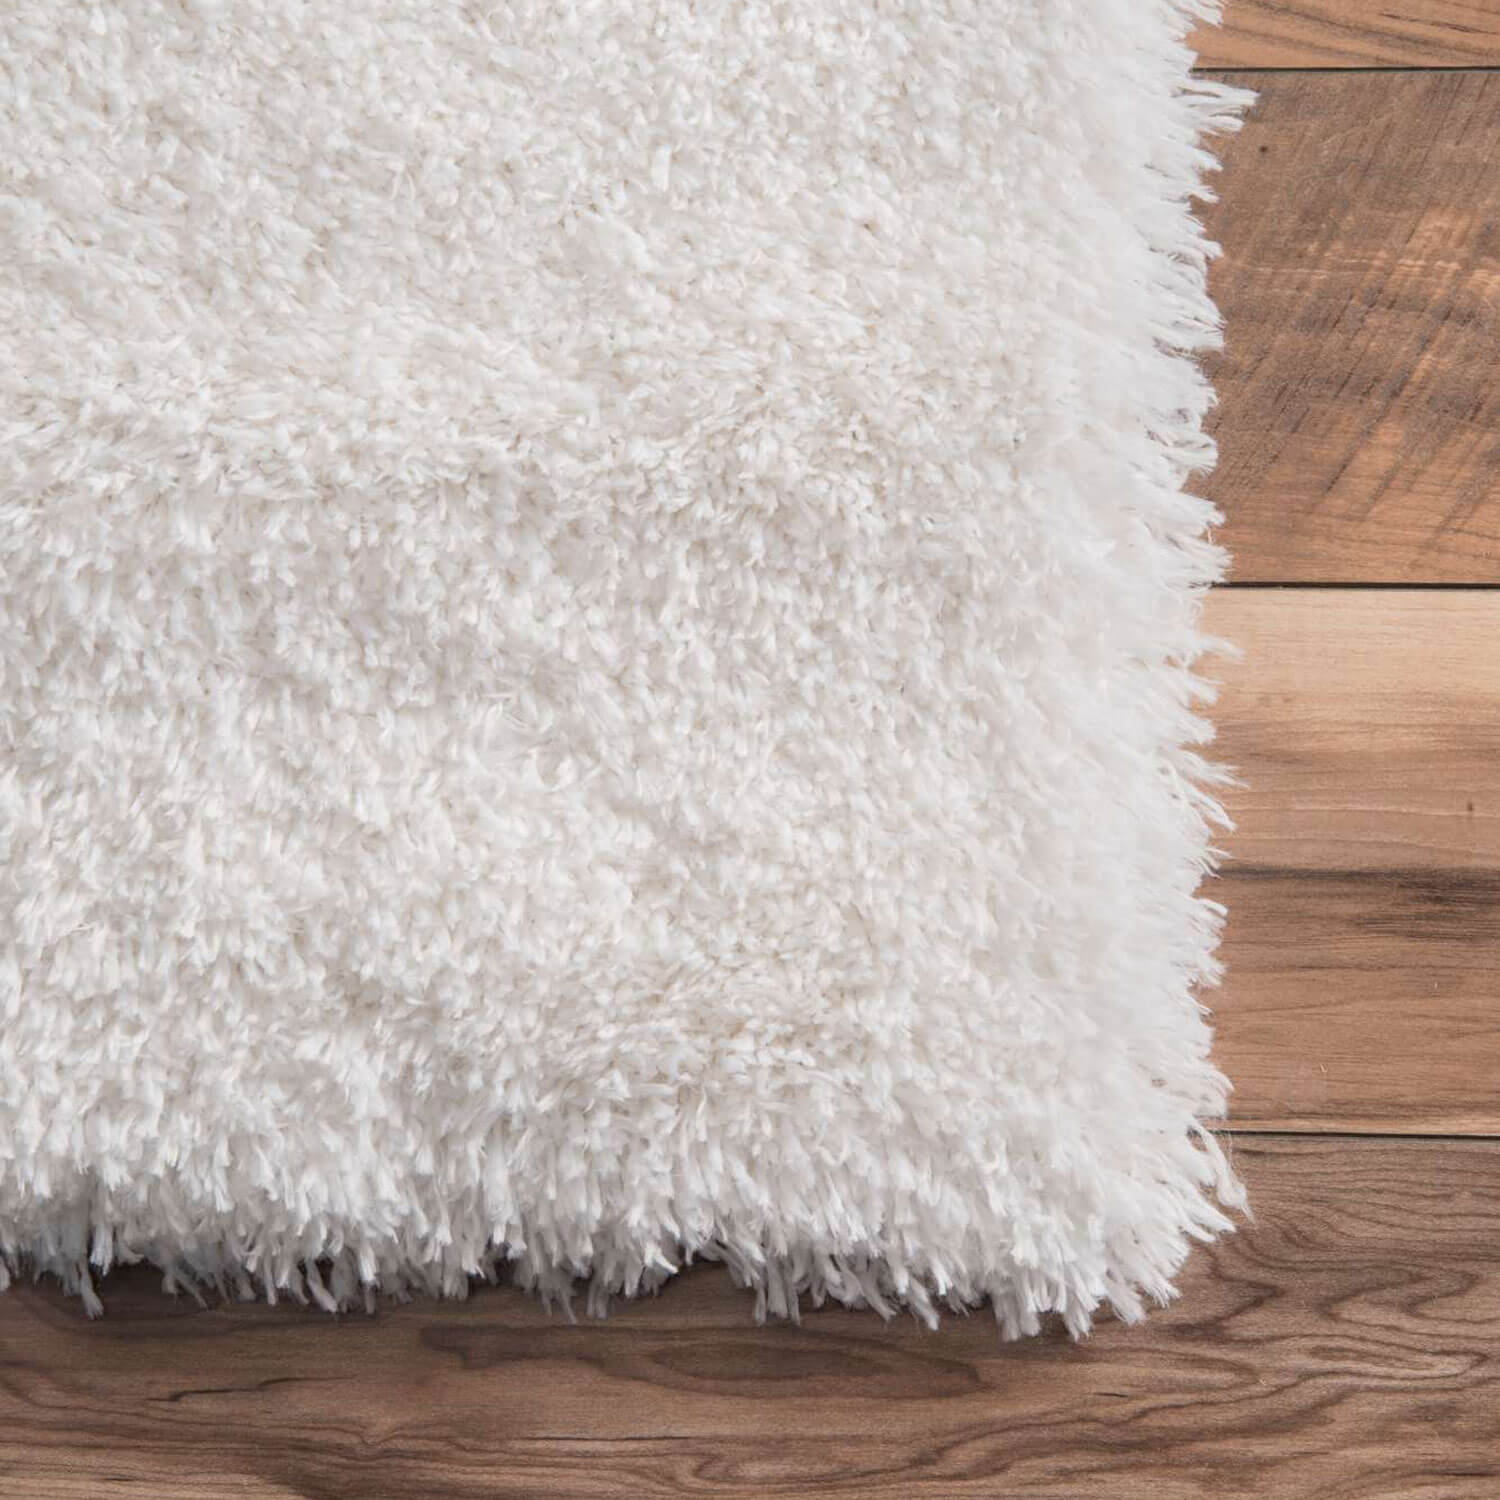 Solid White Simple Shag Area Rug - 3' 3